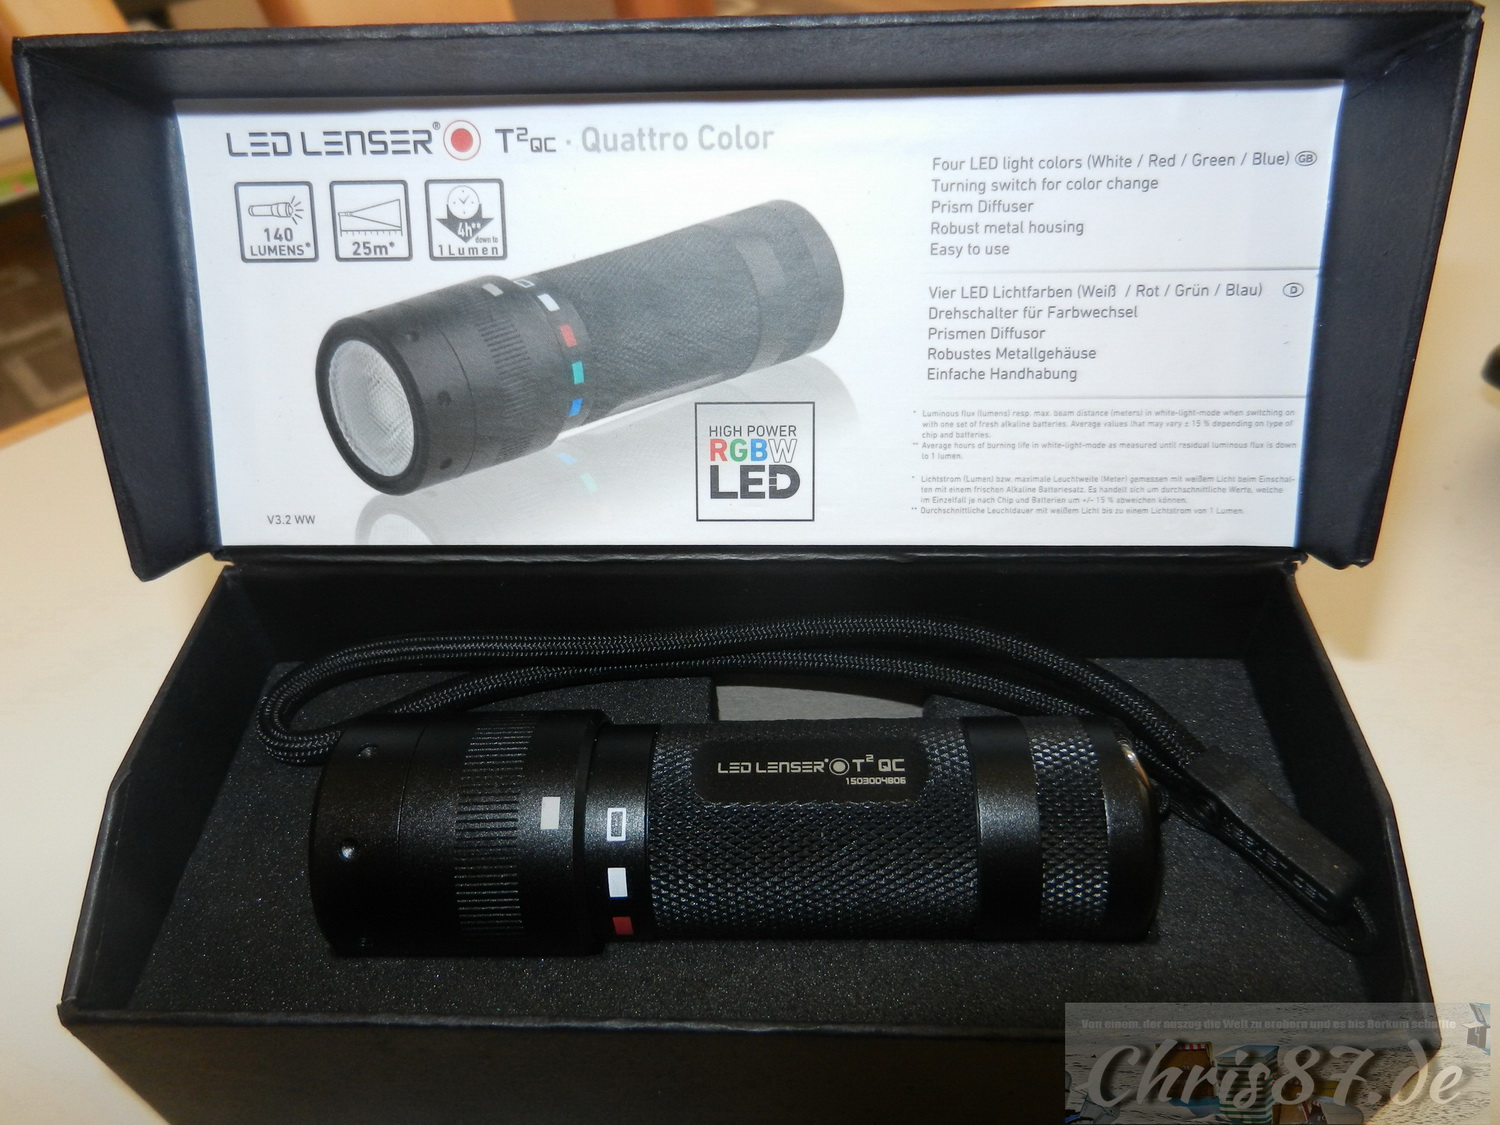 LED Lenser T2 QC